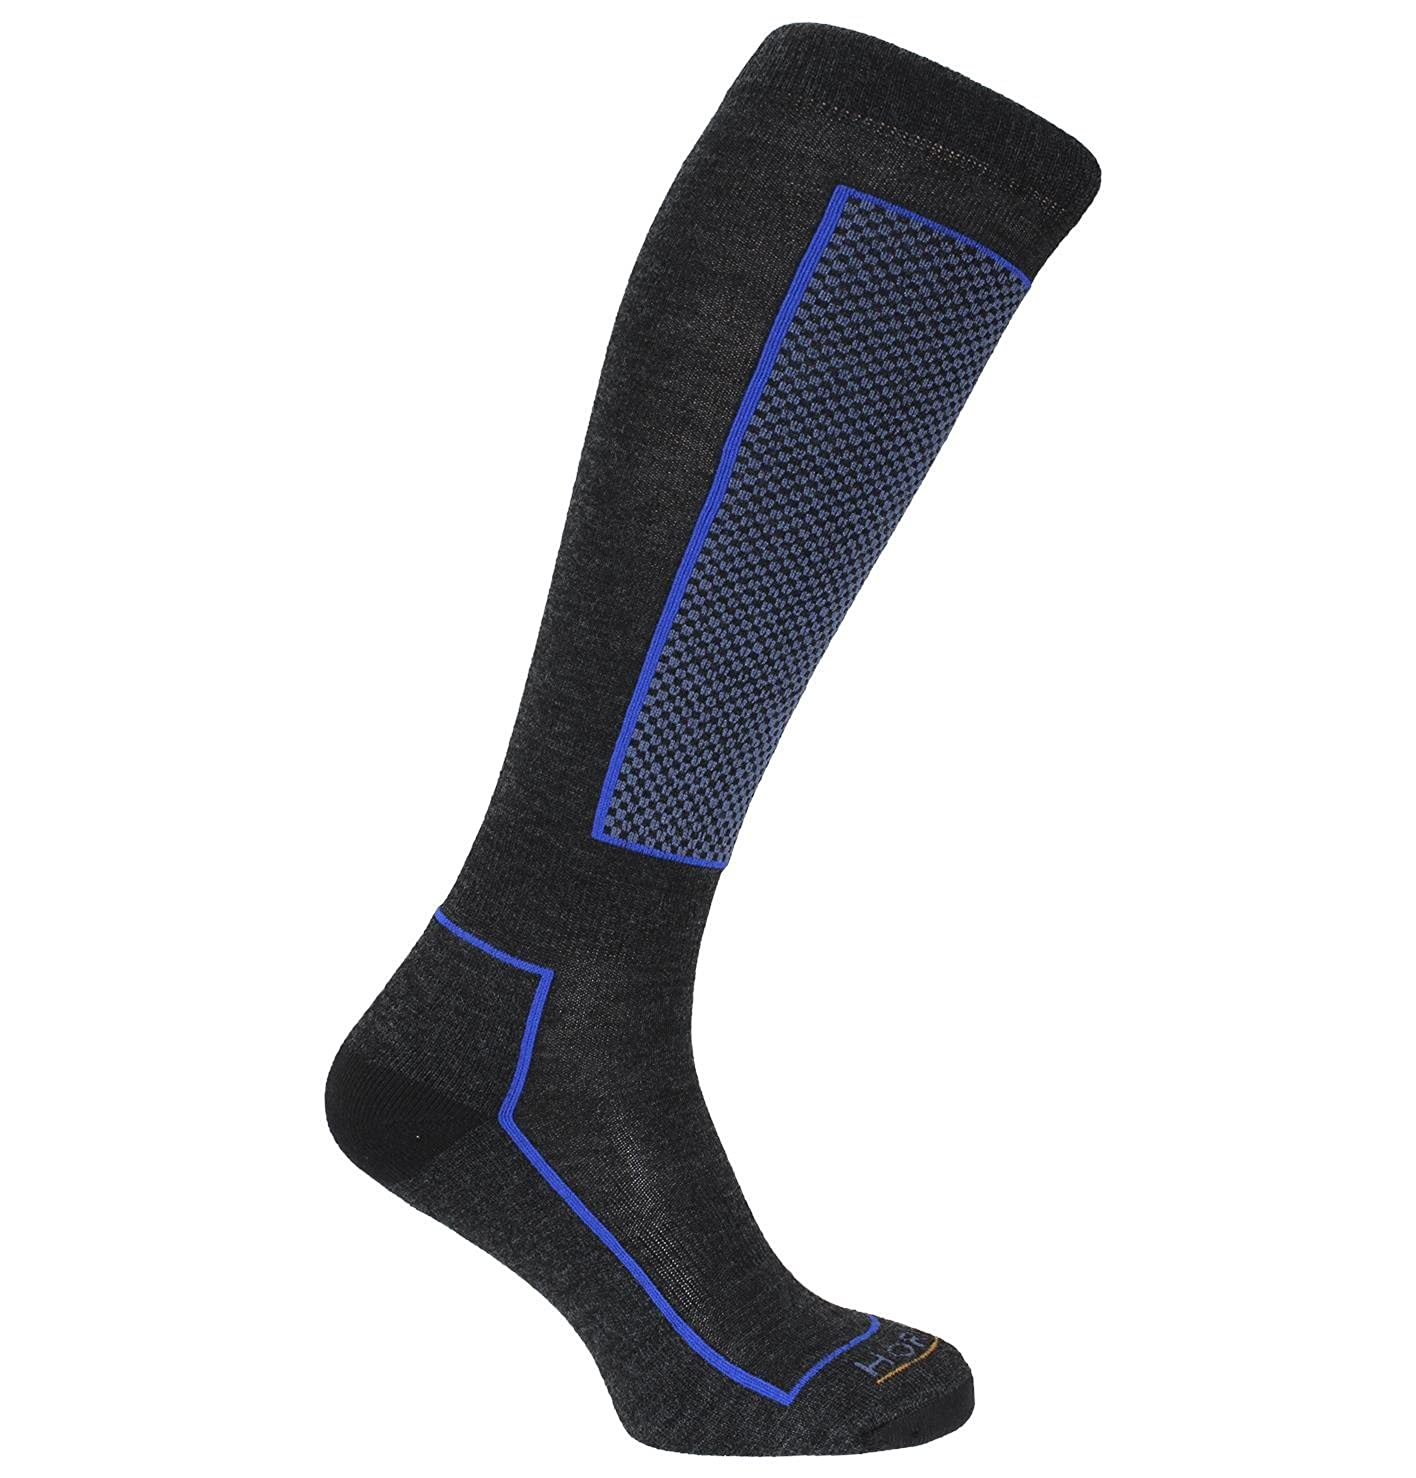 Horizon Slalom Technical Merino Wool Kids Ski Socks Girls Boys Unisex